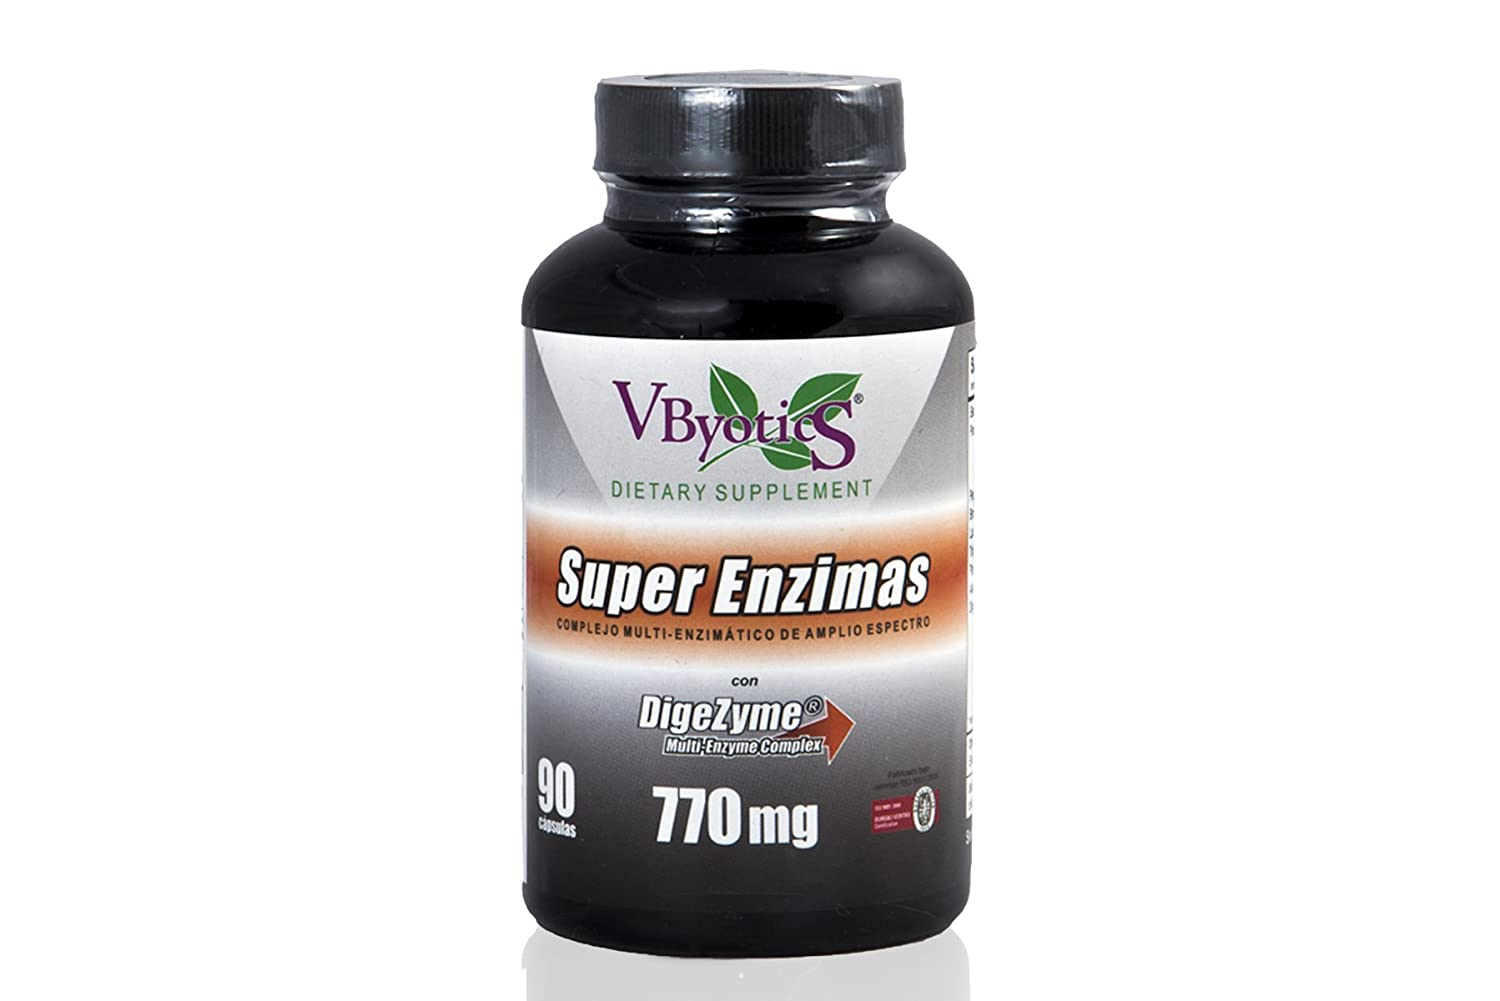 VBYOTICS - SUPER ENZIMAS 90cap VBYOTICS: Amazon.es: Salud y cuidado ...